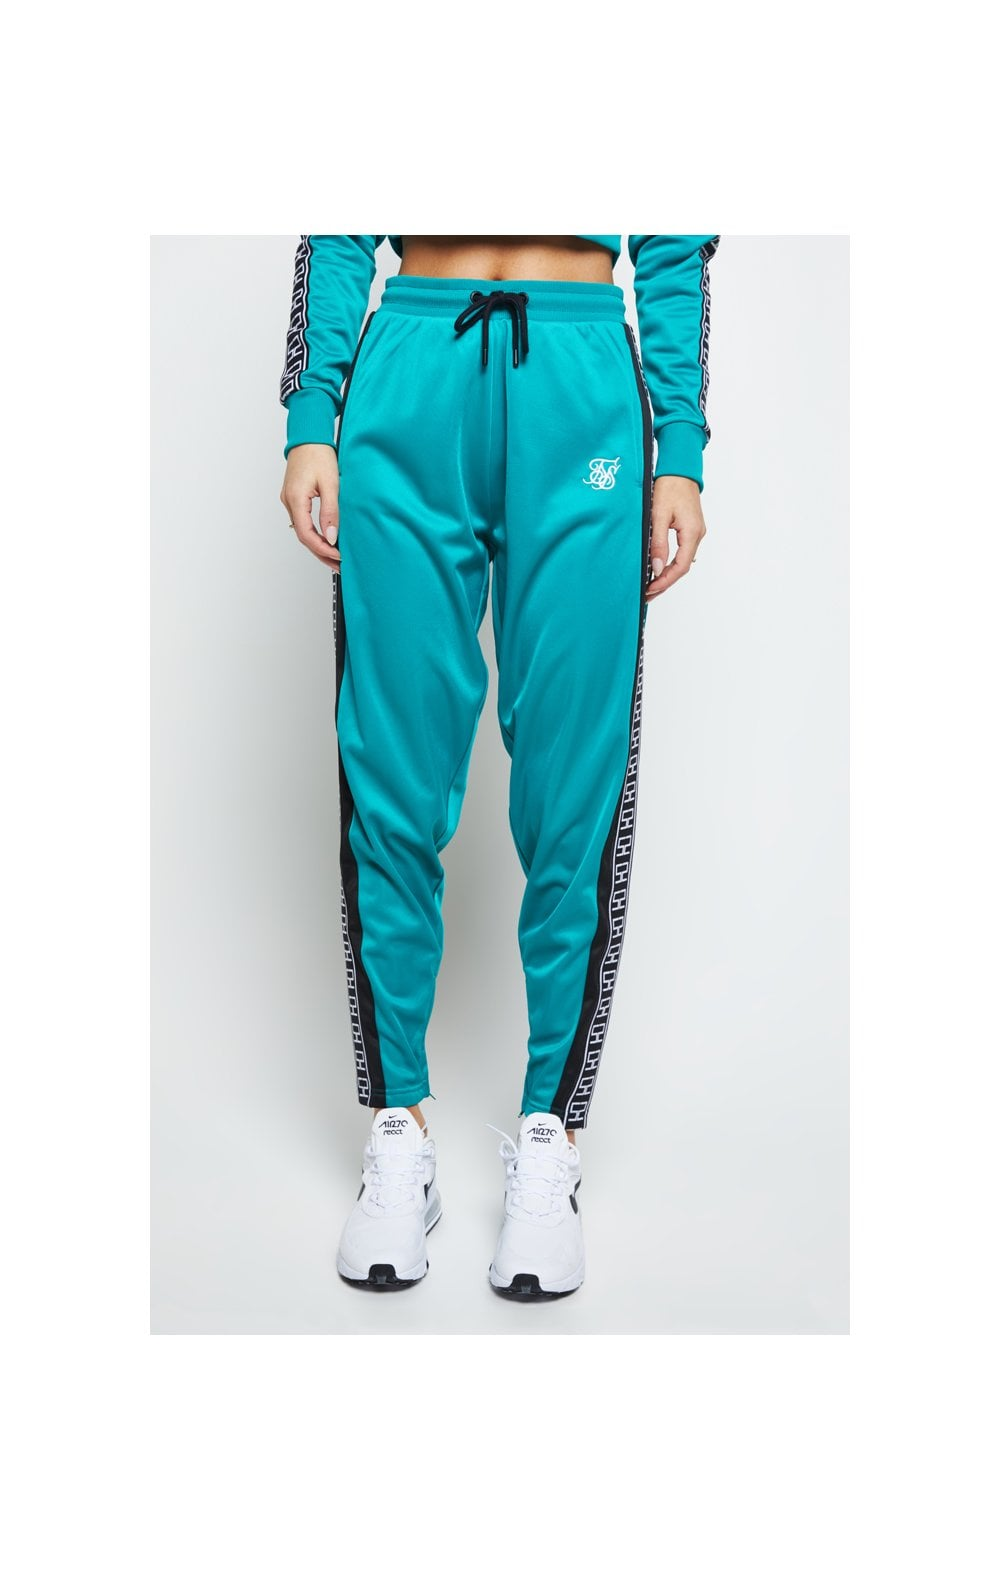 SikSilk Azure Track Pants - Teal